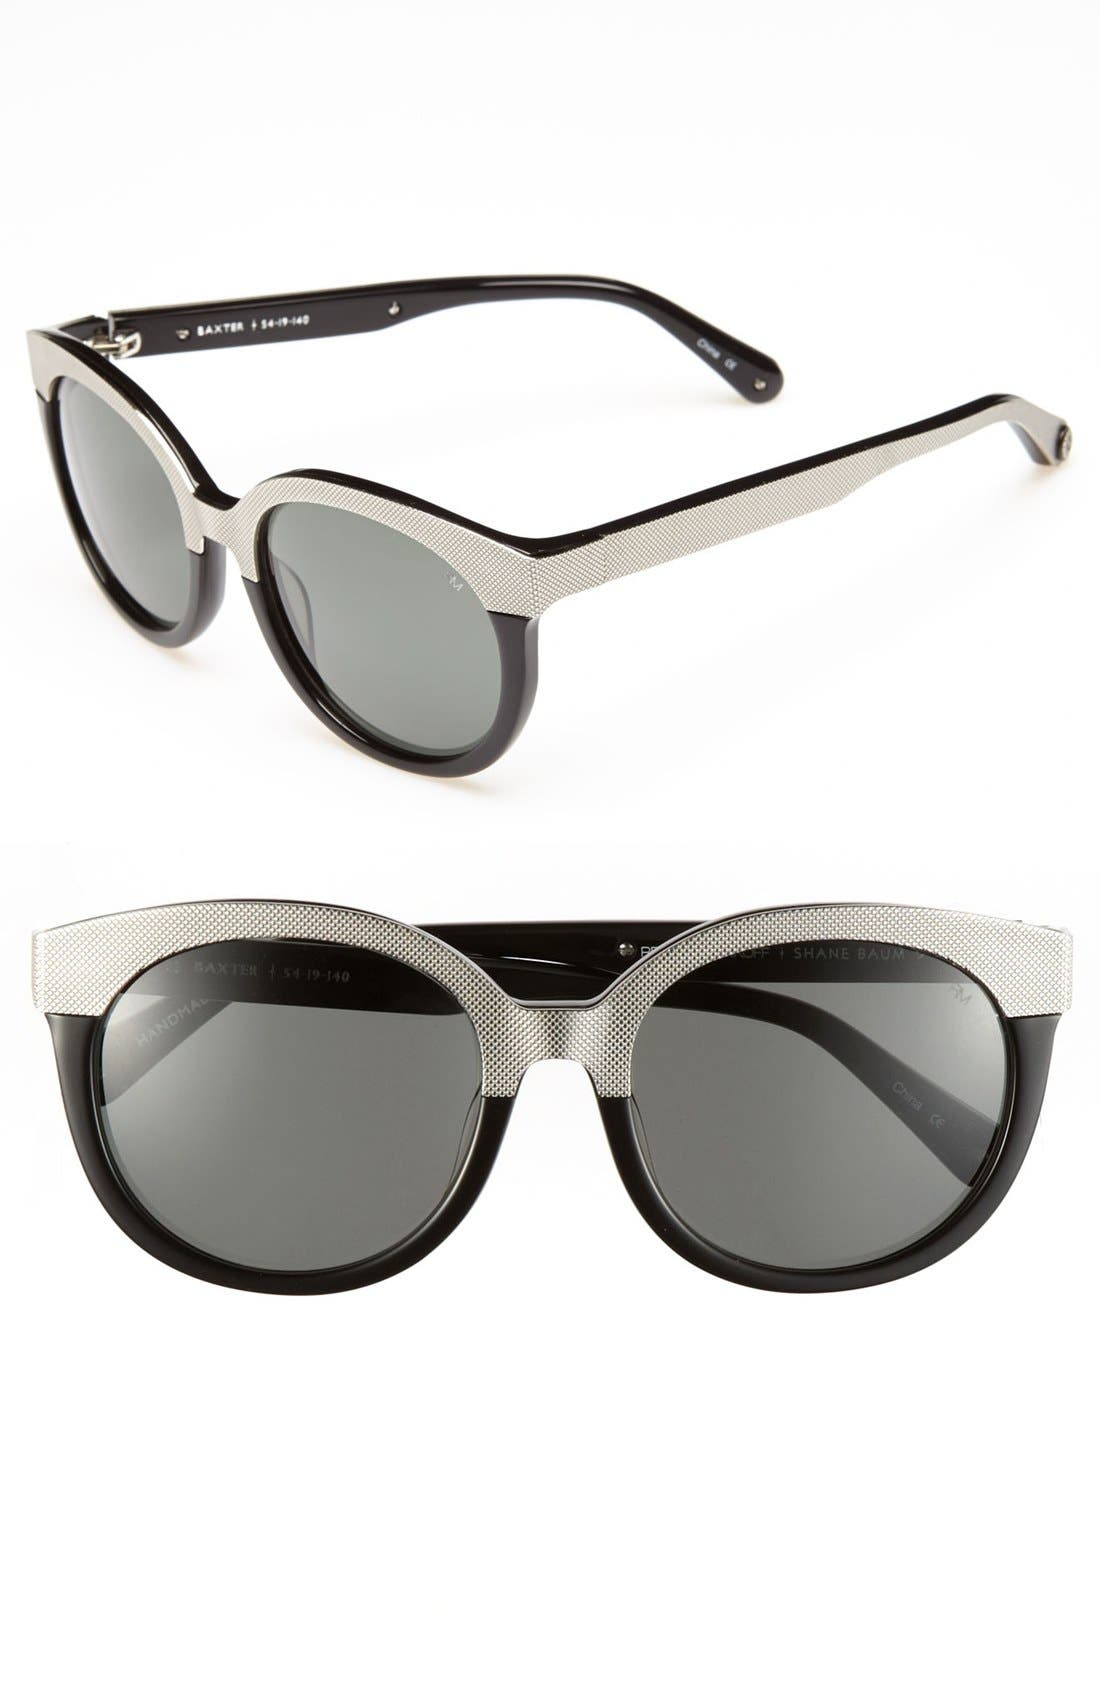 Alternate Image 1 Selected - Rebecca Minkoff 'Baxter' Sunglasses